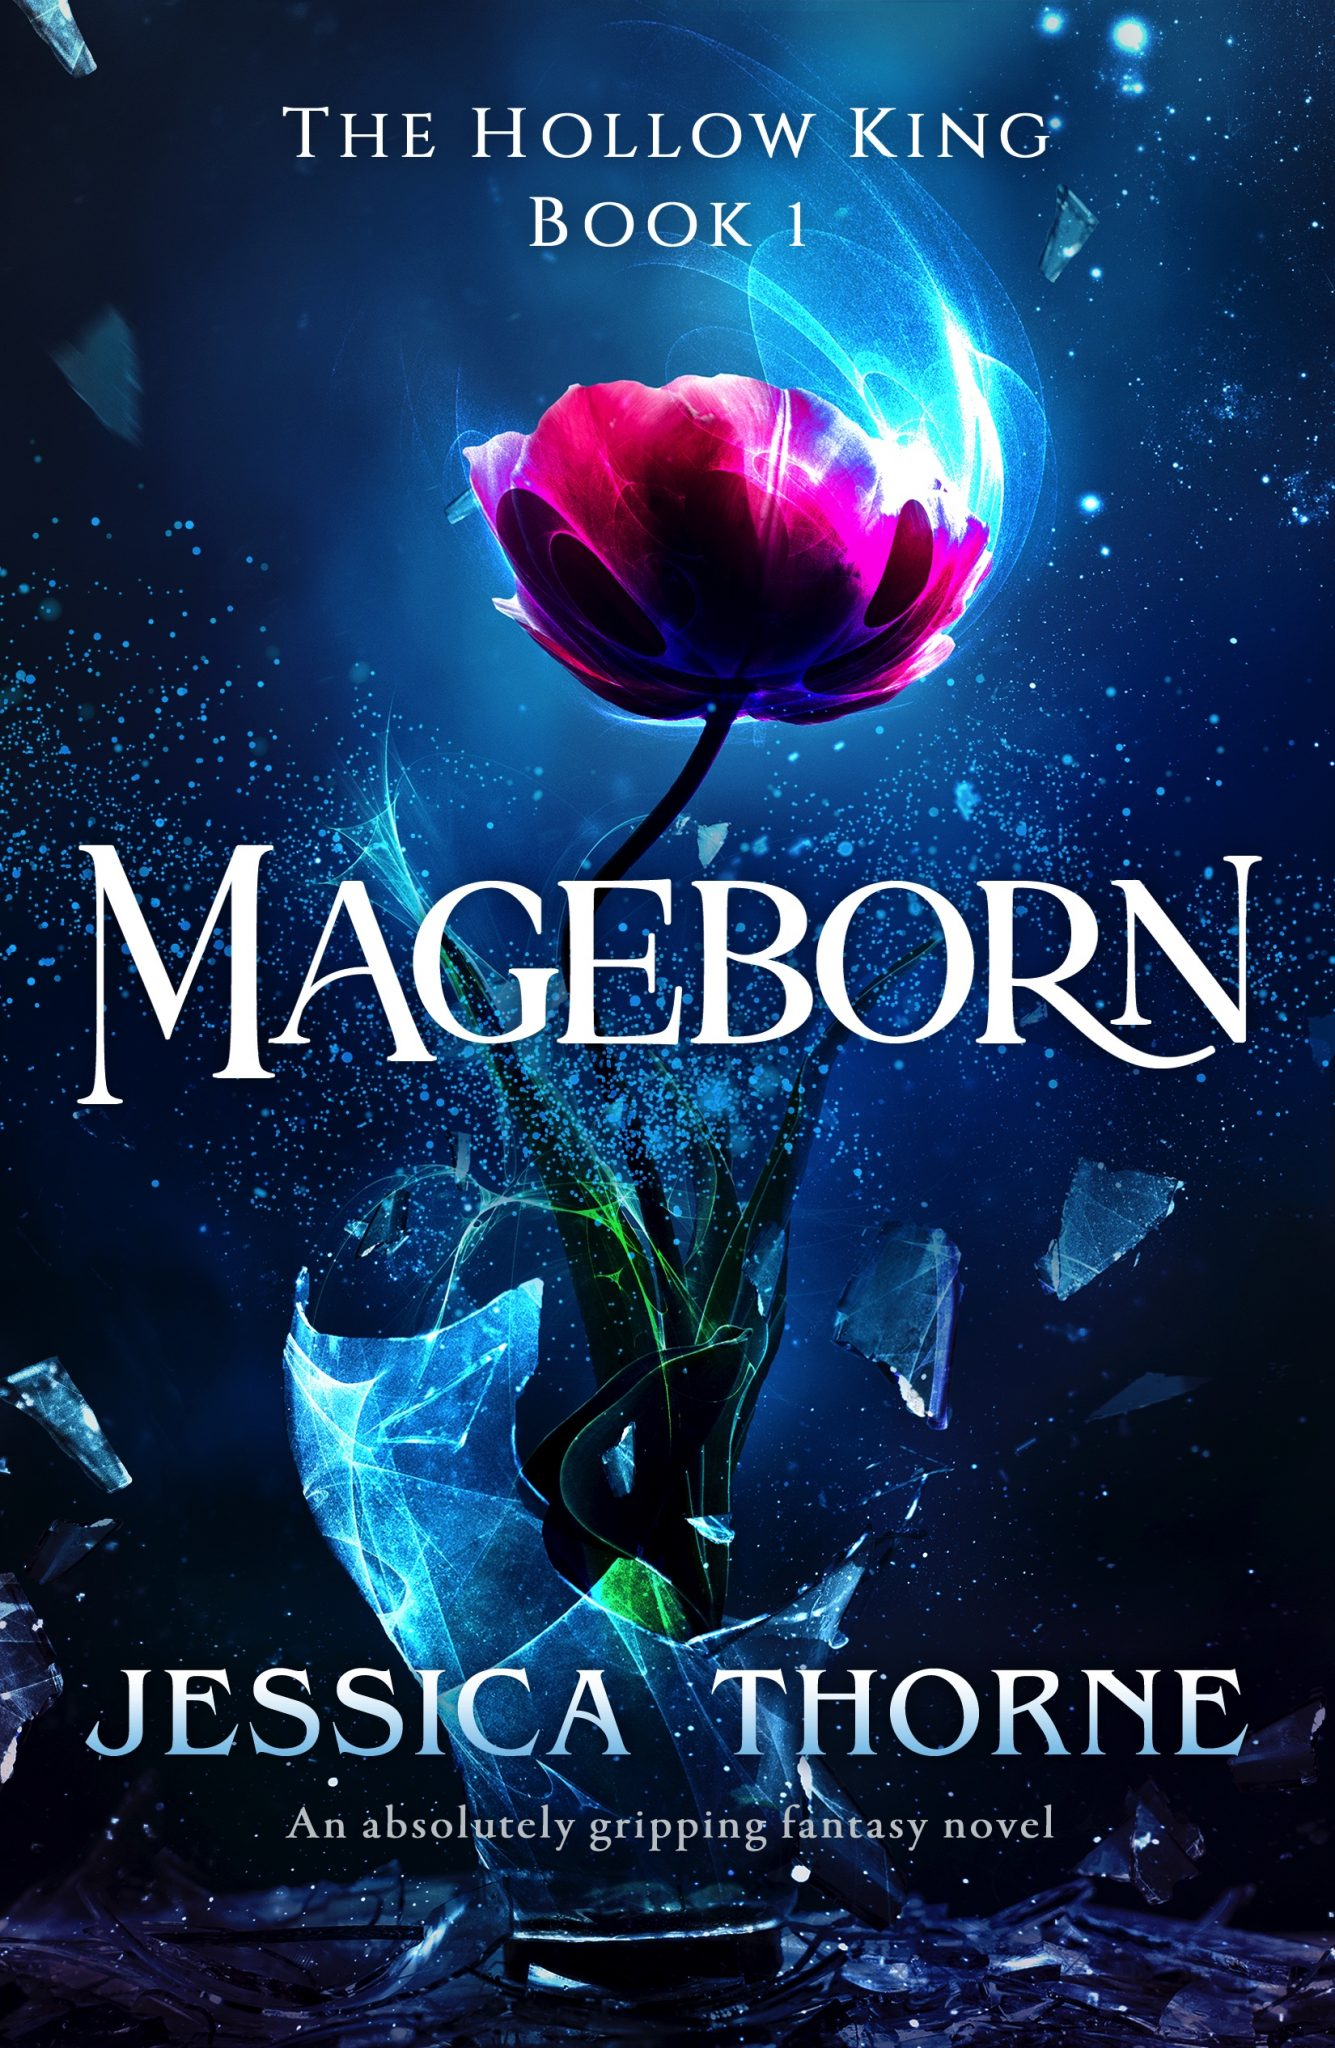 Mageborn by Jessica Thorne